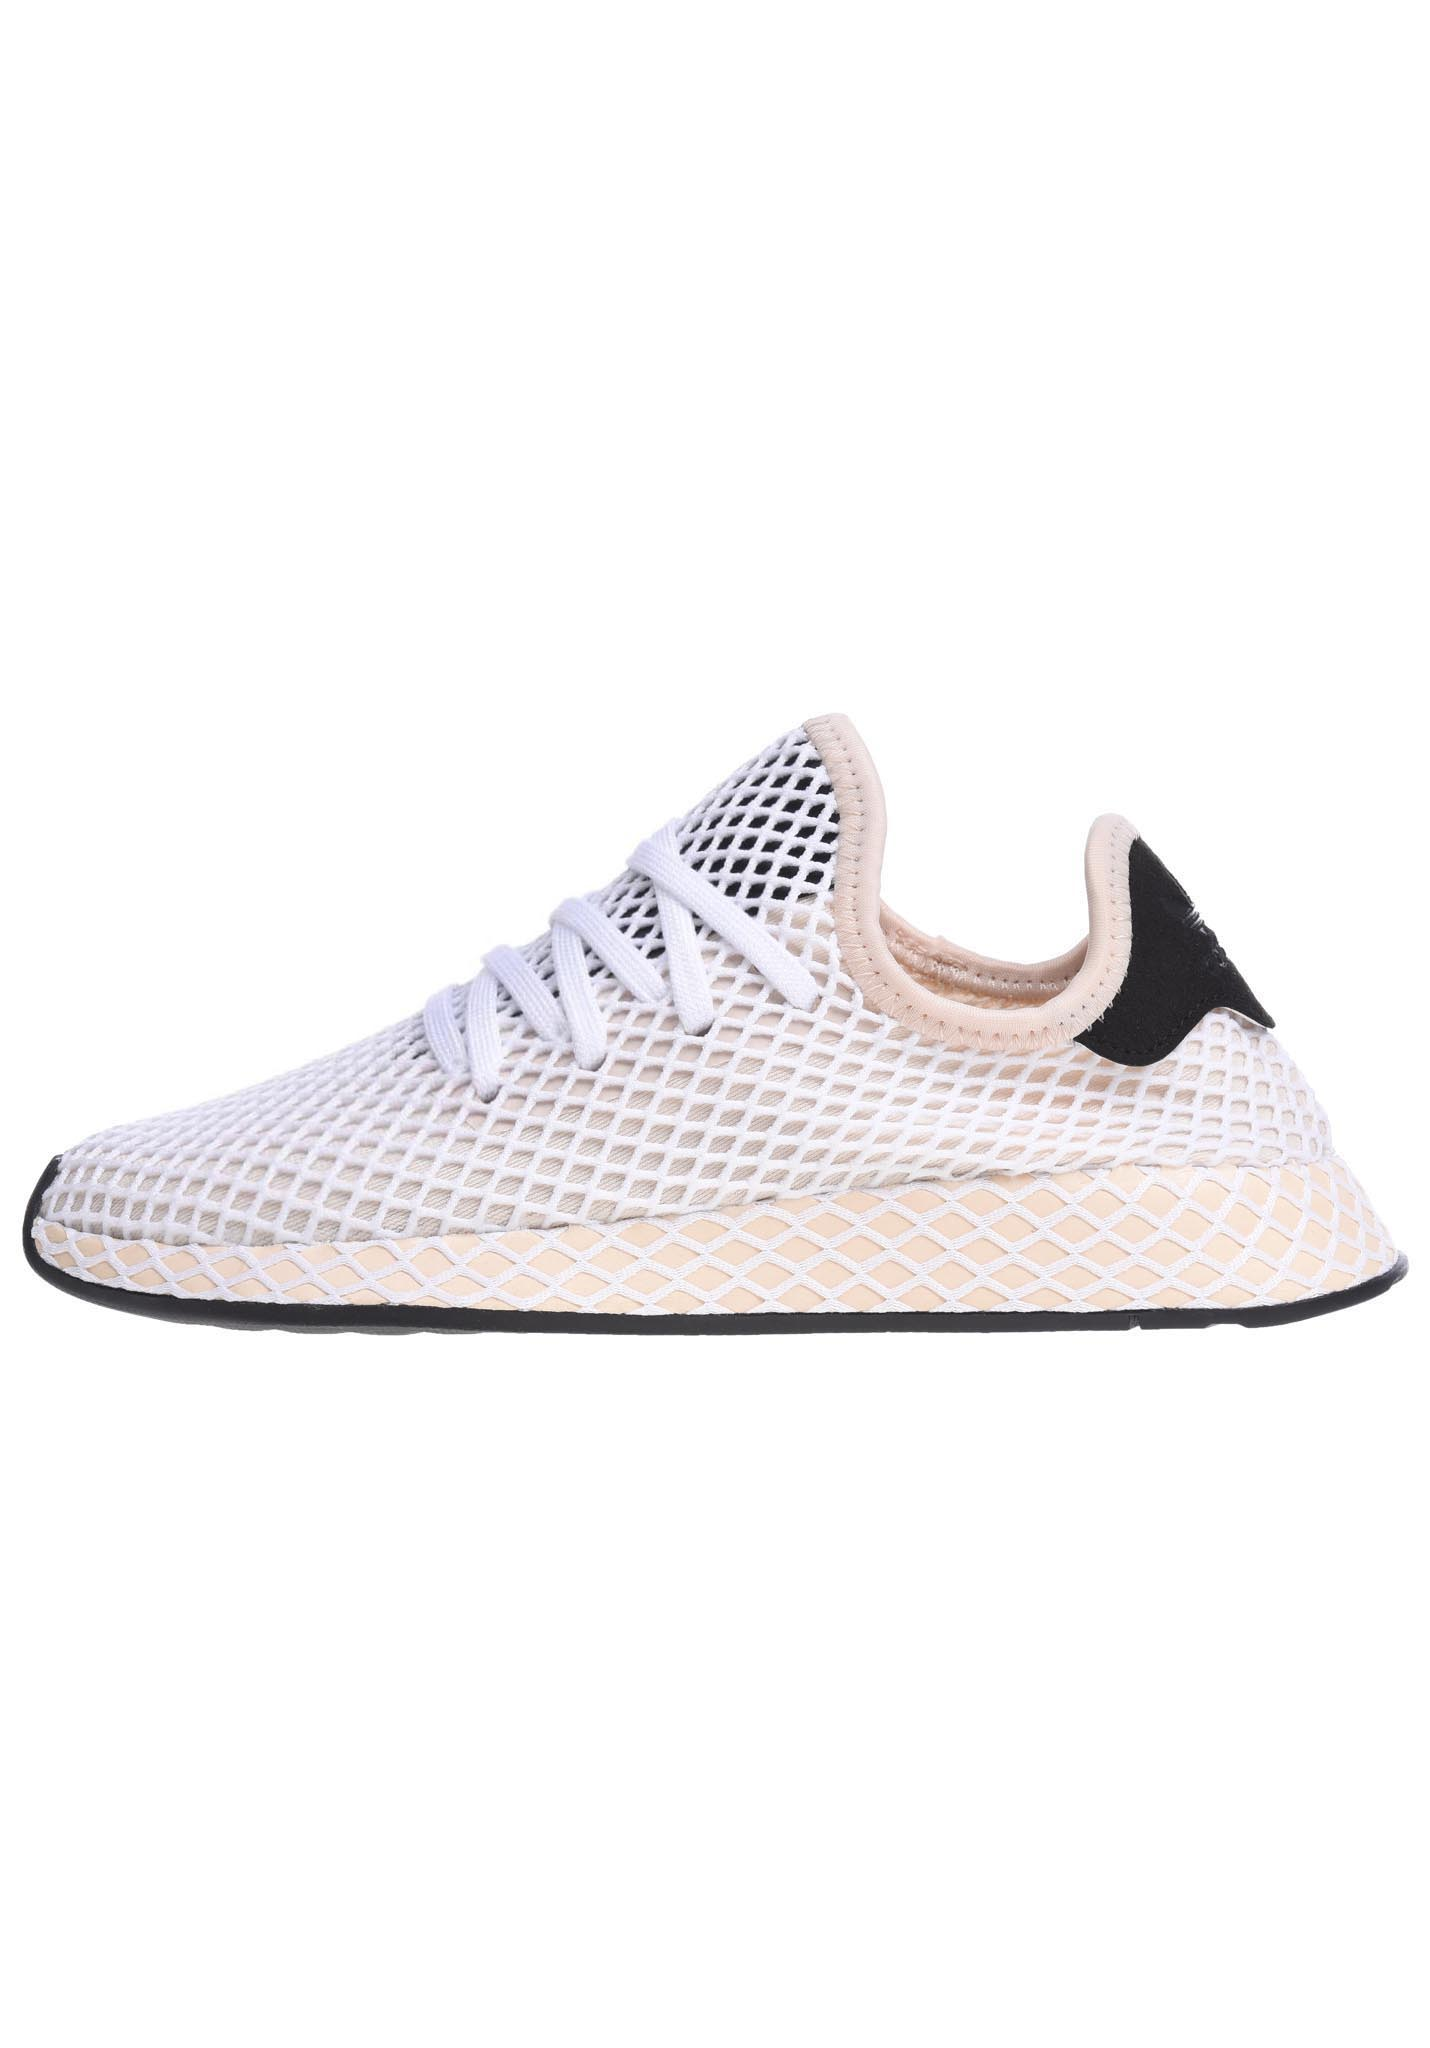 new concept 4d0ee 8fc7c ADIDAS ORIGINALS Deerupt Runner - Sneakers for Women - White - Planet Sports